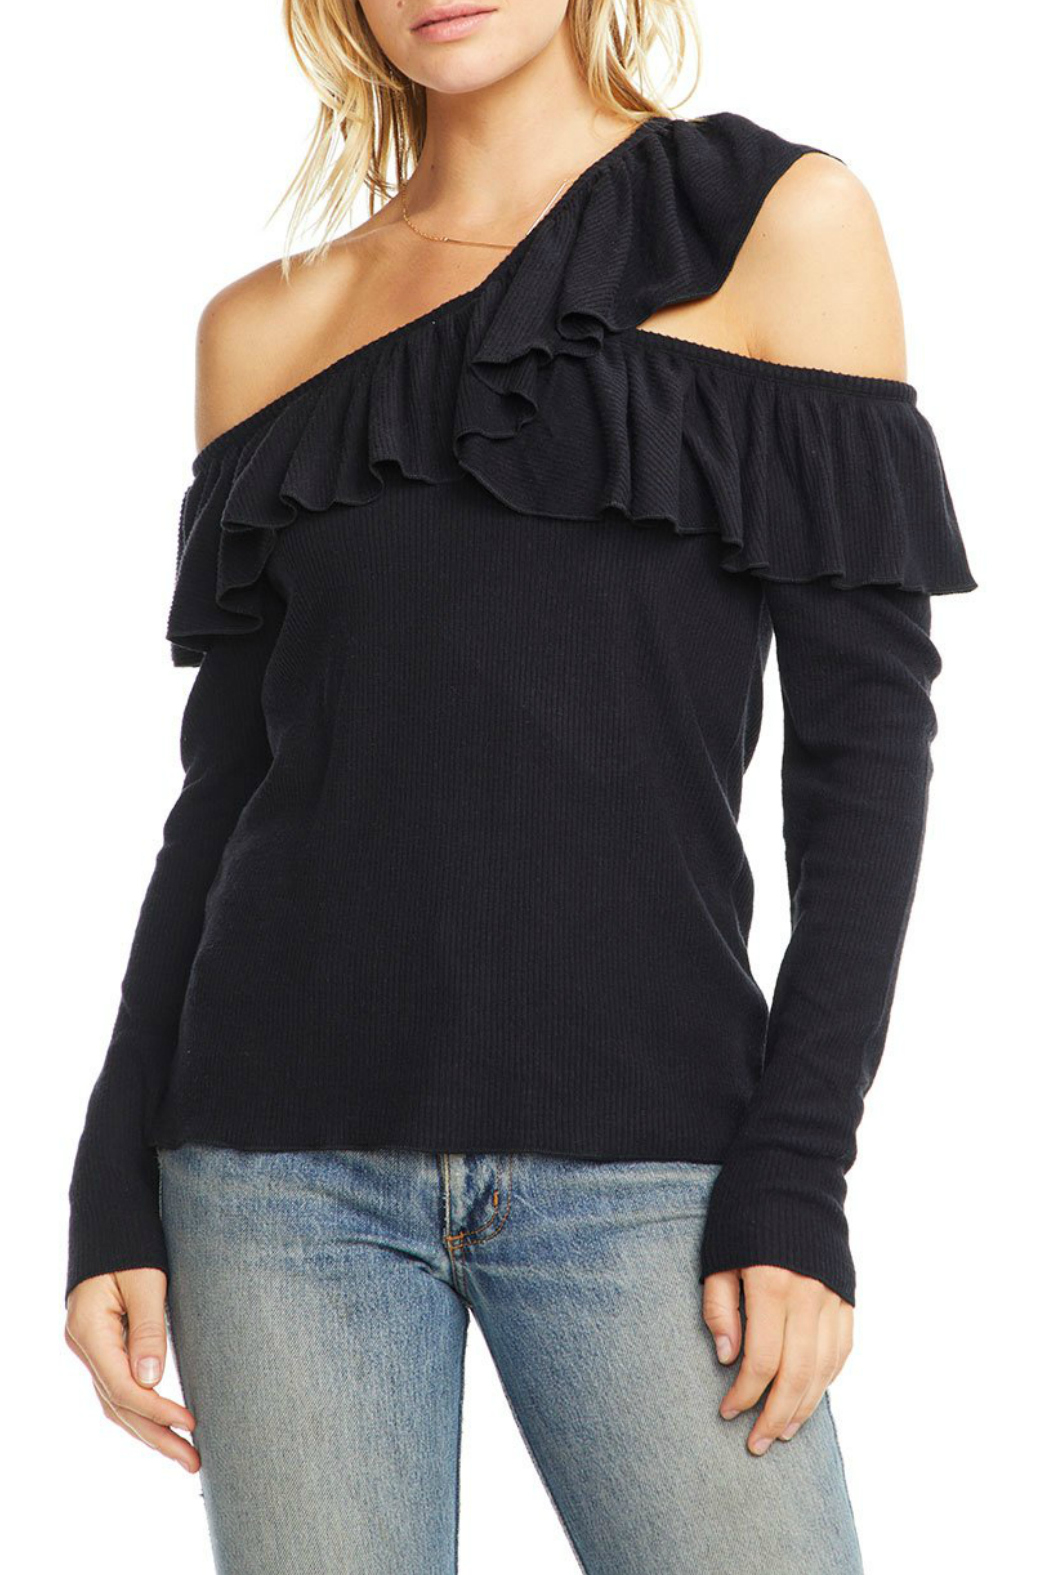 Chaser Love Rib One Shoulder Sweater - Main Image